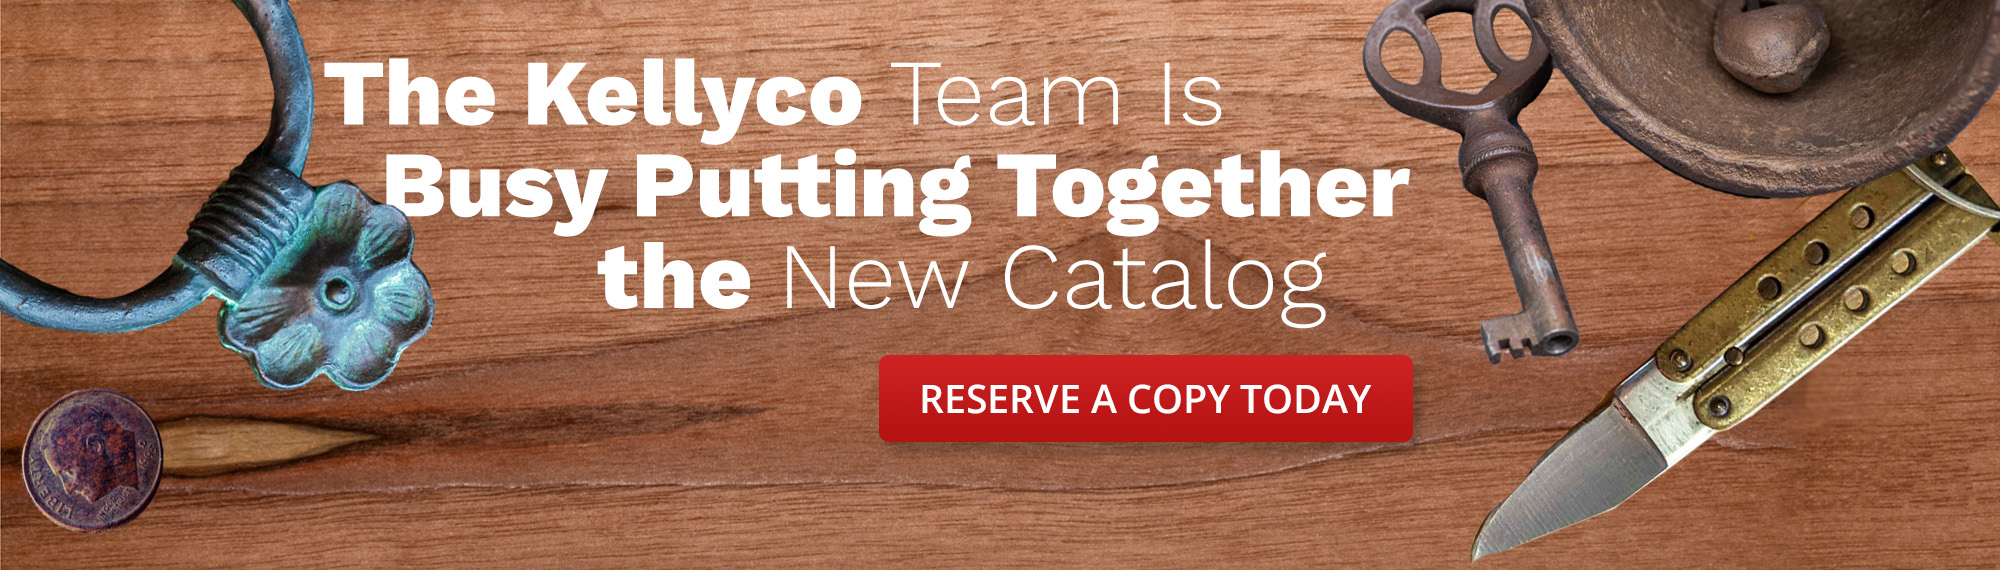 Kellyco Catalog Signup 2021 with Text Reading The Kellyco Team Is Busy Putting Together the New Catalog Reserve a Copy Today Over Red Box on Wood Grain Background with Metal Relics arranged Around Edges